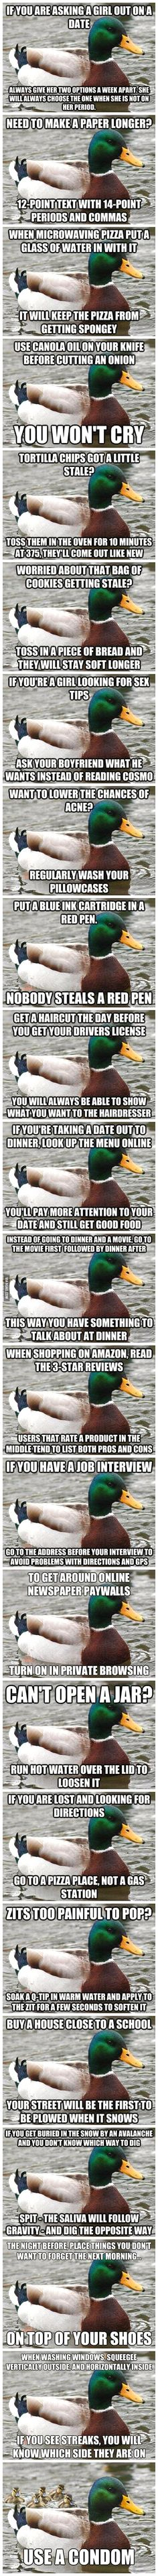 Great advice duck, the last one killed me